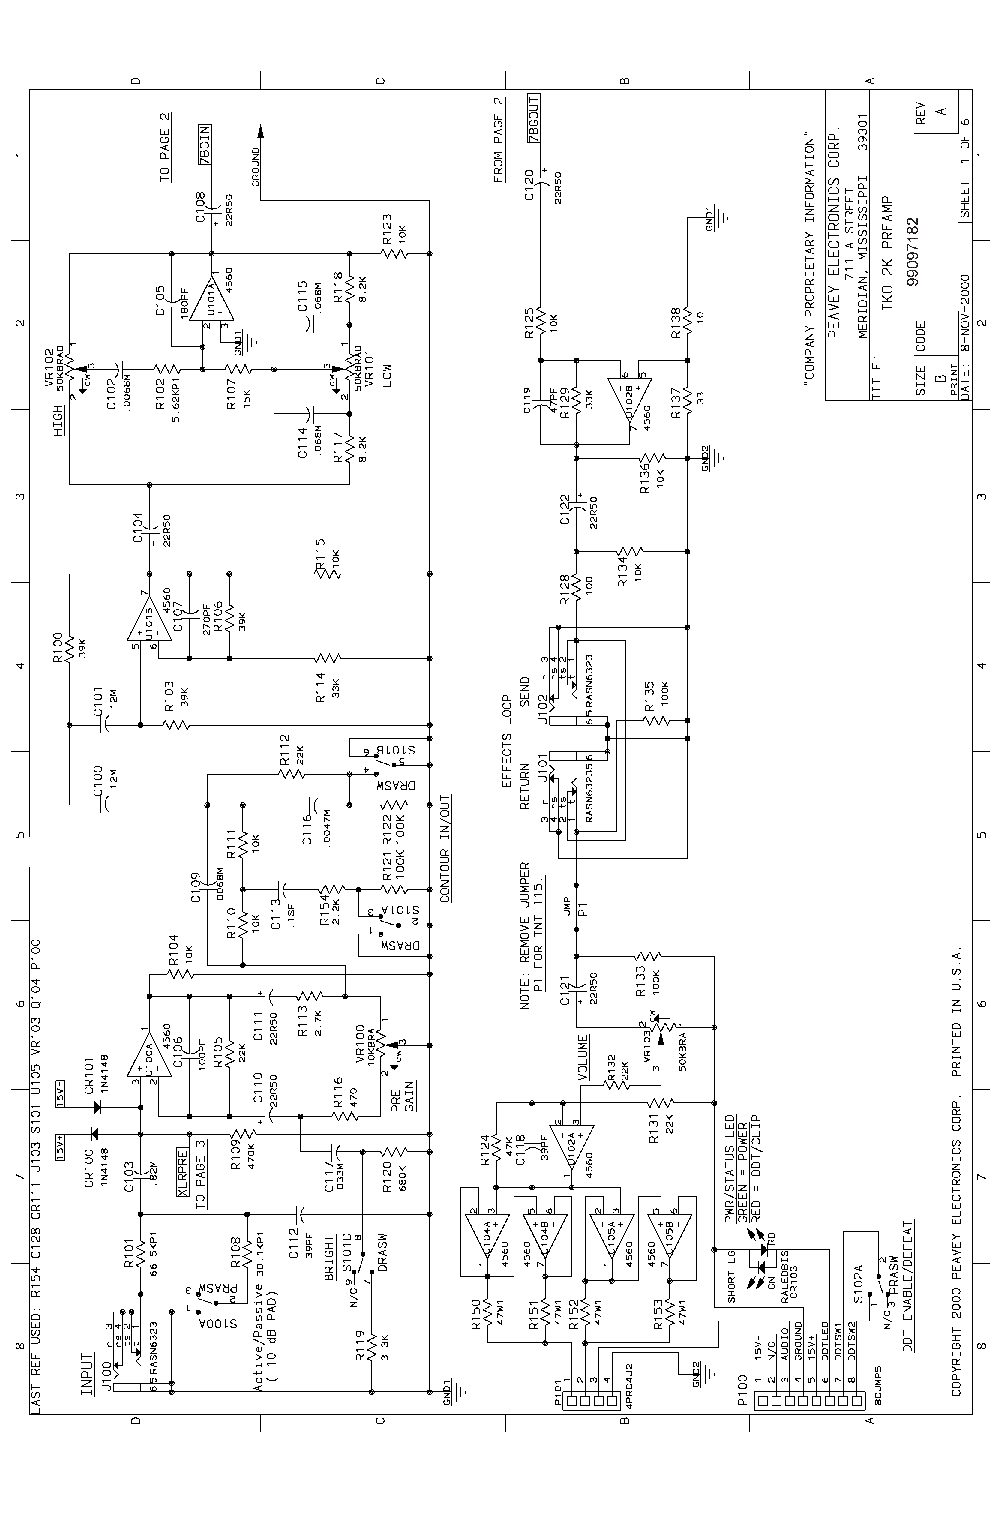 wiring diagram for kikker 5150 honda wiring diagram wiring